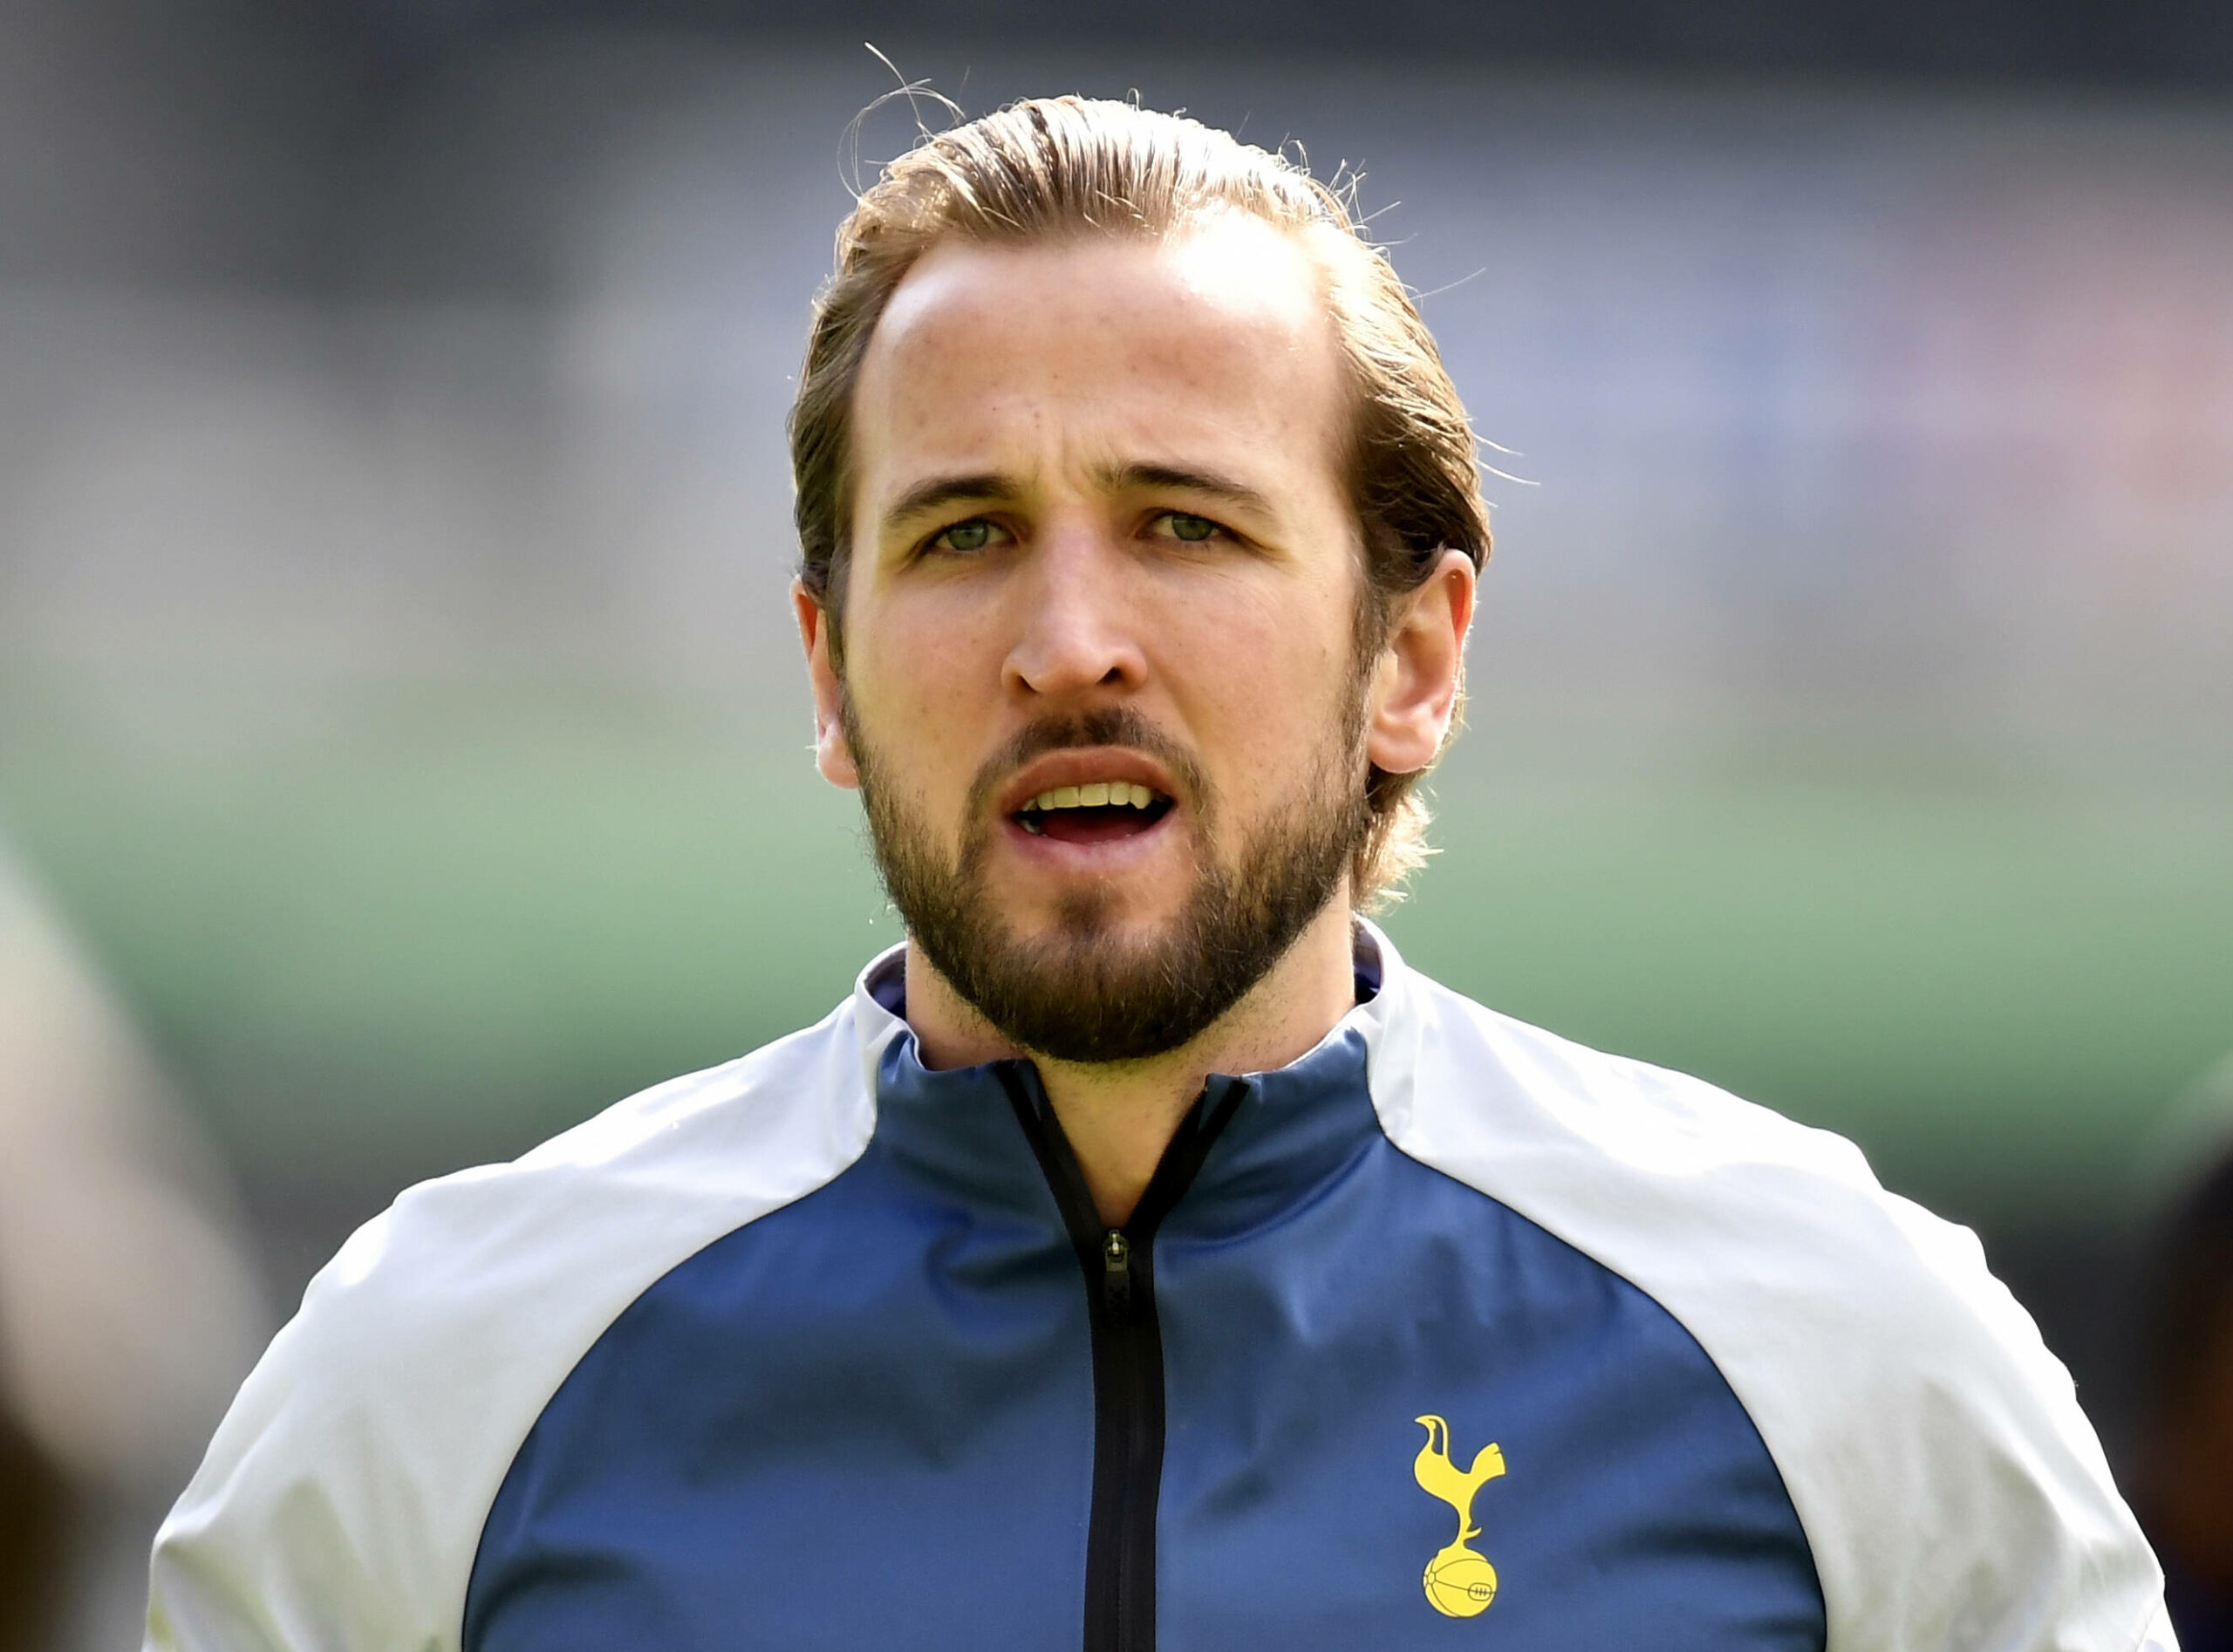 Manchester City ready to make improved bid for Harry Kane